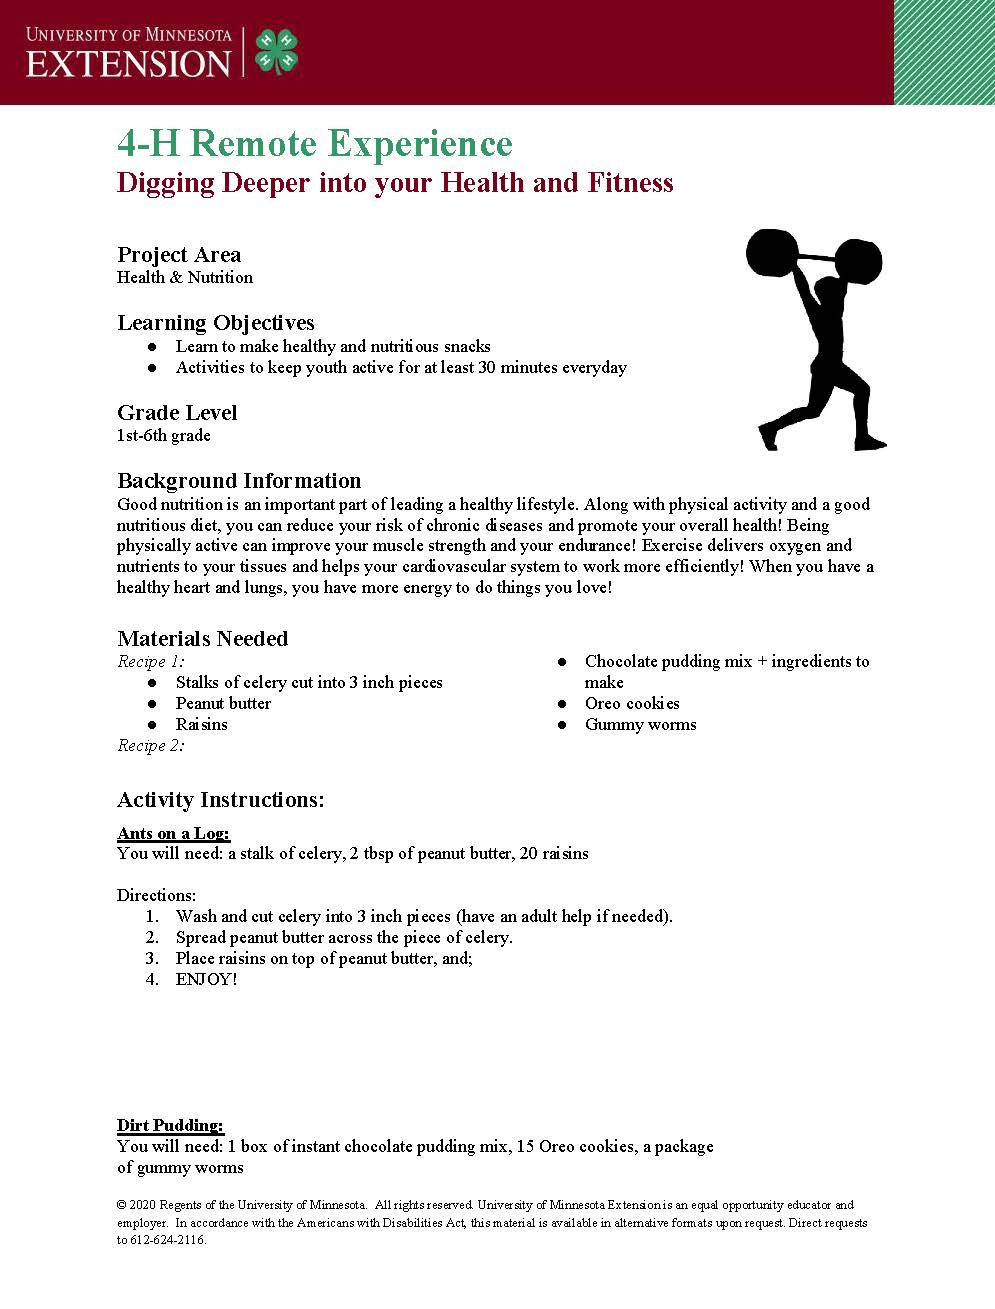 Join Swift County 4-H for a fitness and fun experience this summer!